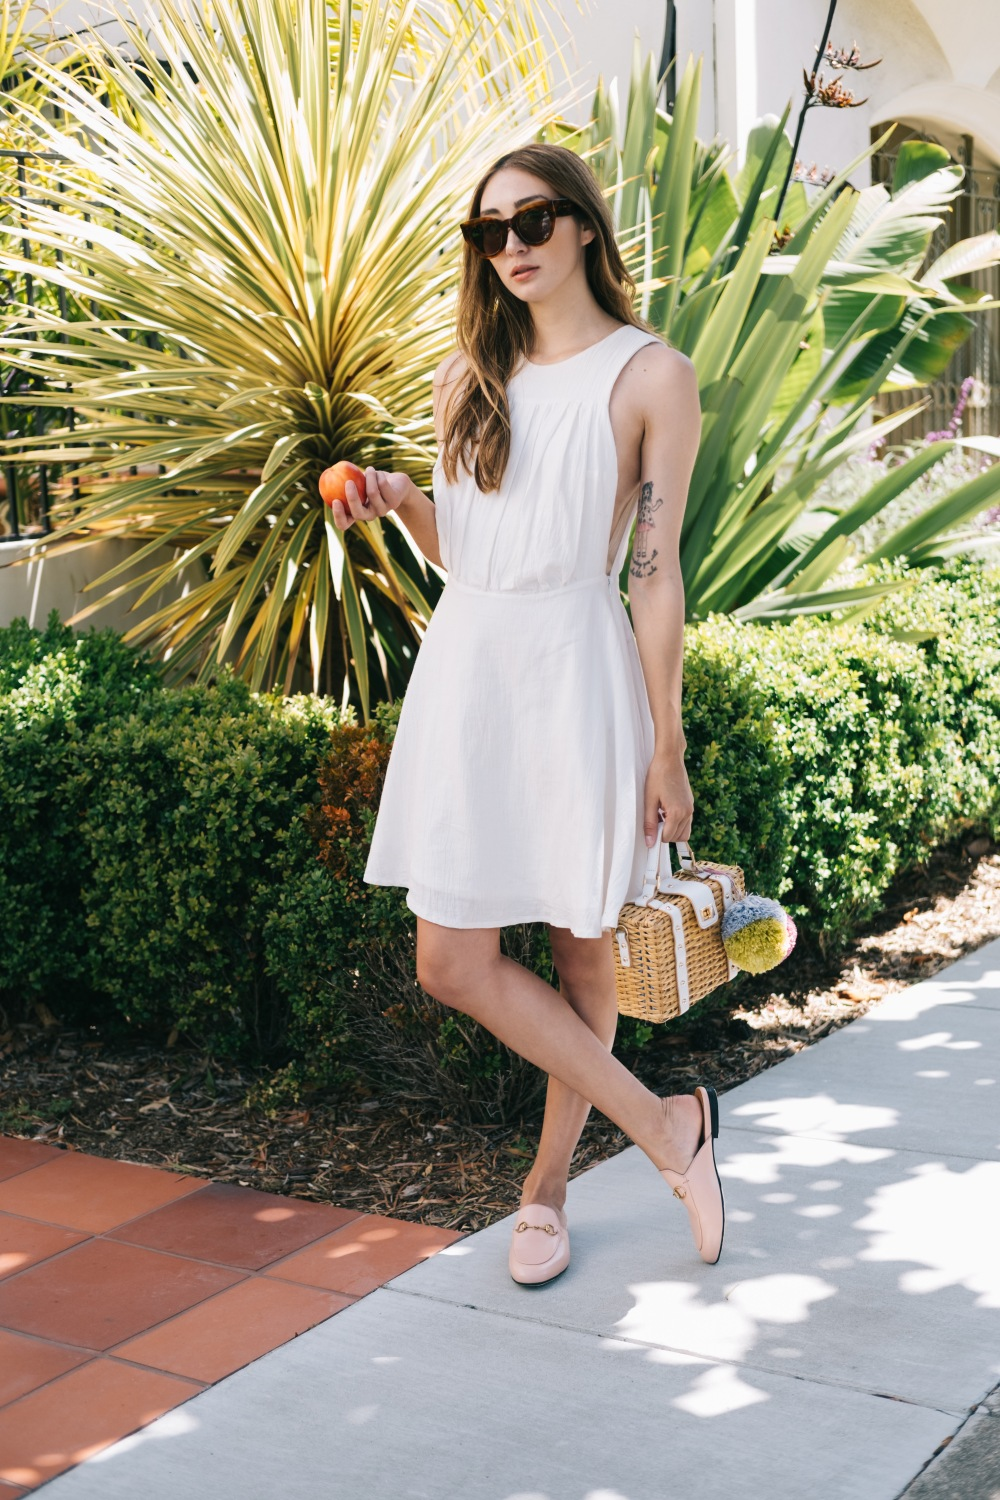 Just Peachy Alyssa Nicole Claire Dress San Francisco Marina District 7